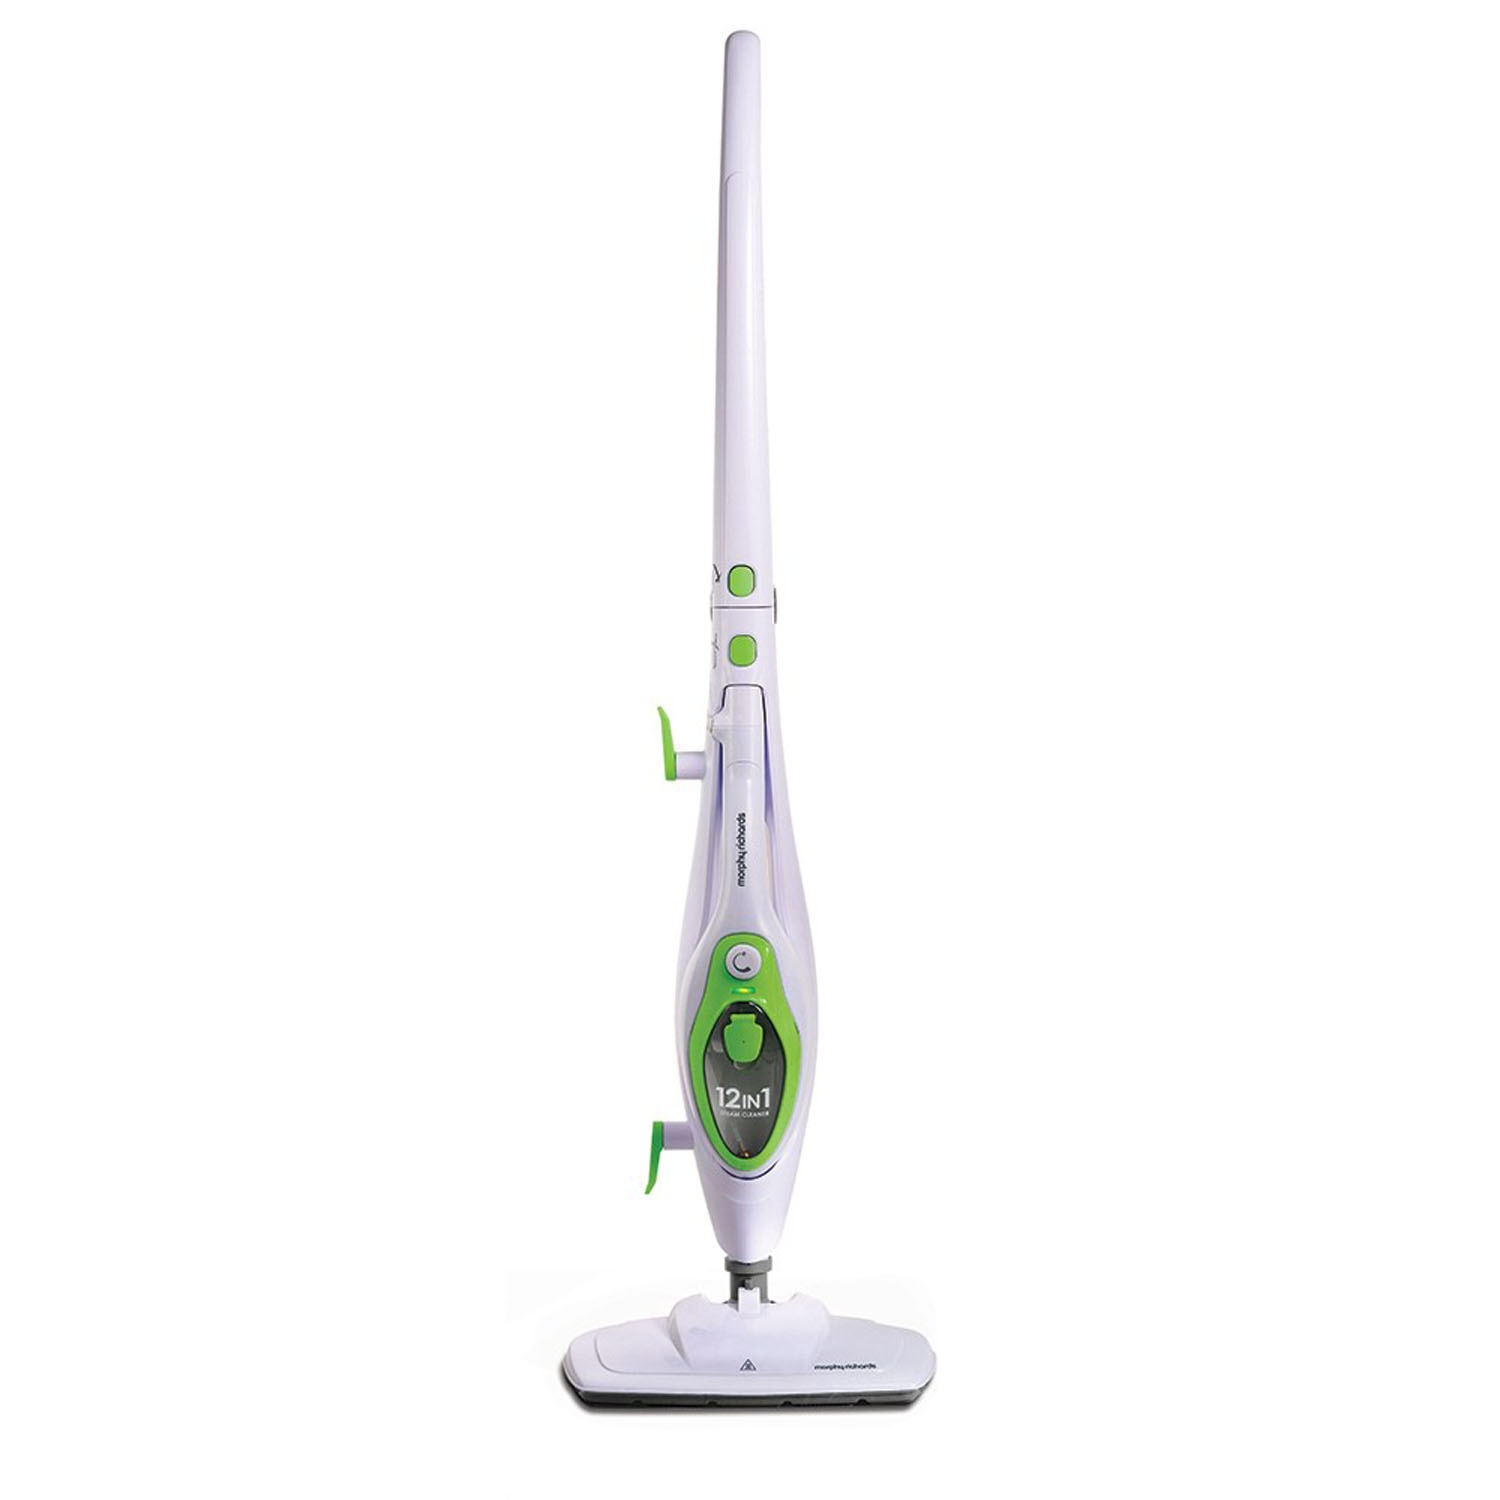 Image of Morphy Richards 720512 12 in 1 Steam Cleaner